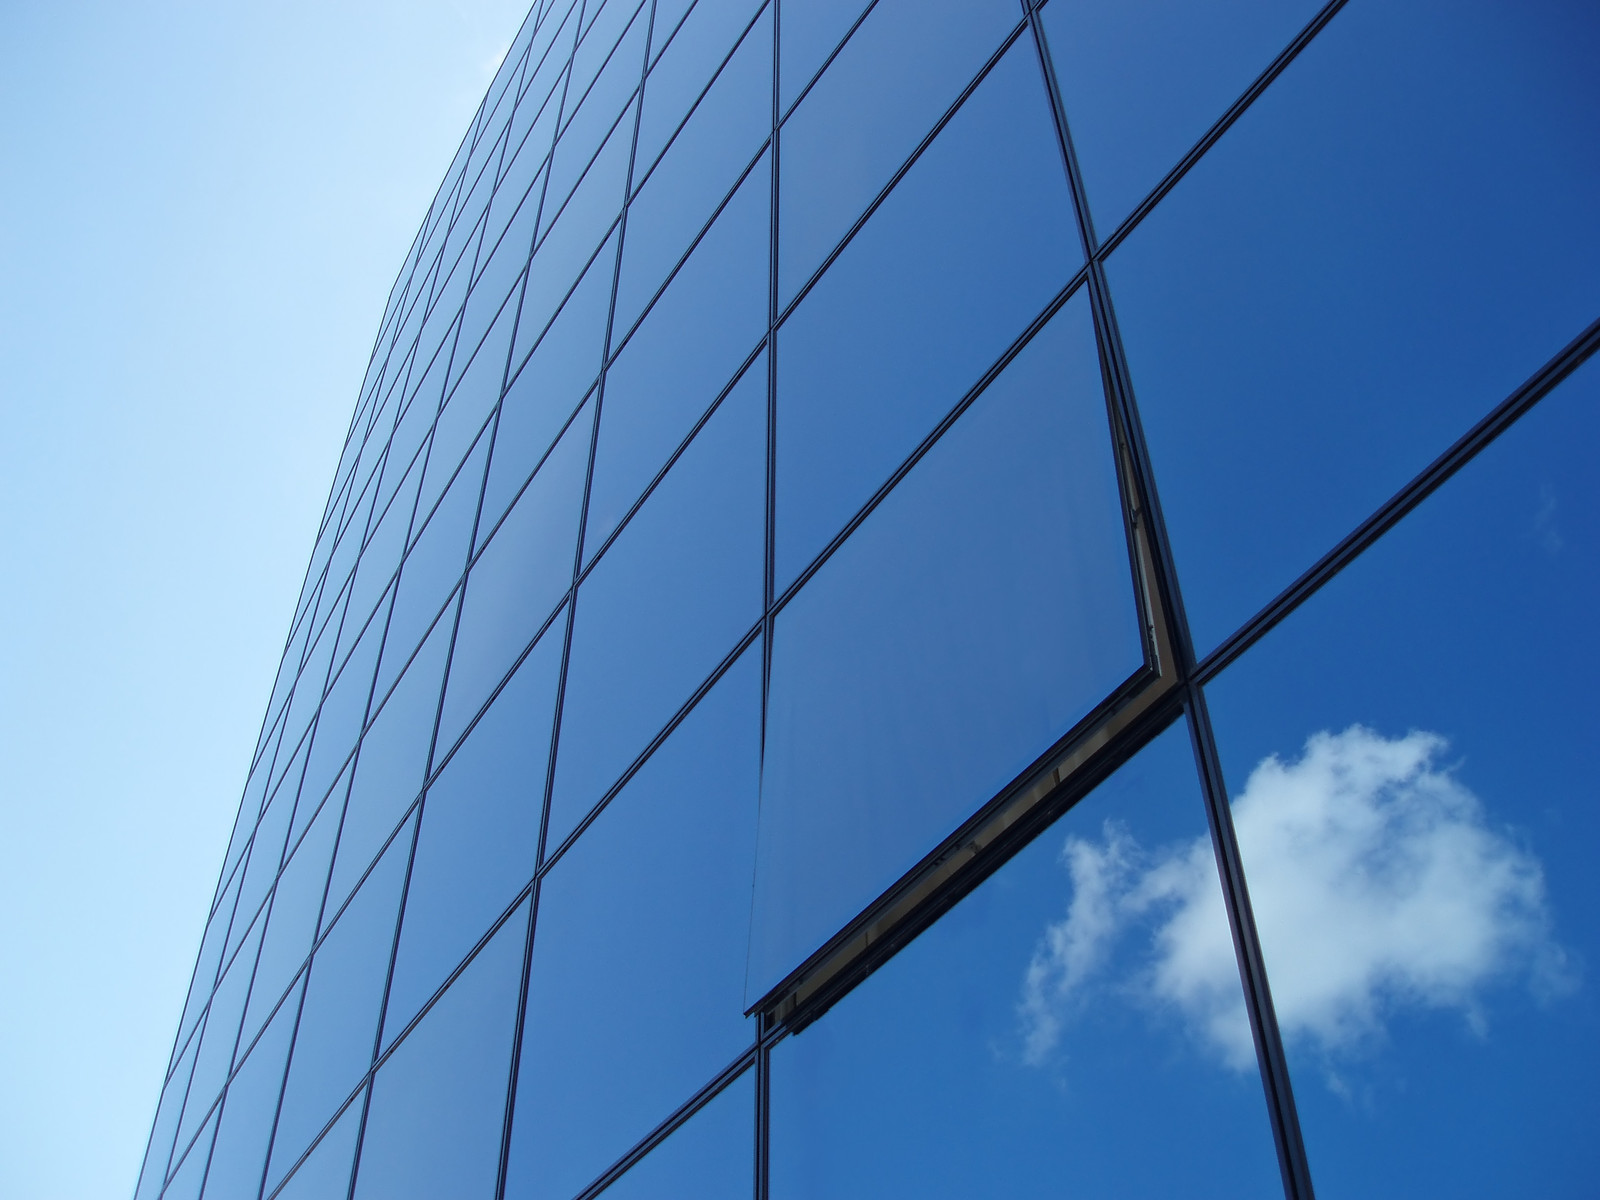 Heat Reflective Glass for saving energy in Room